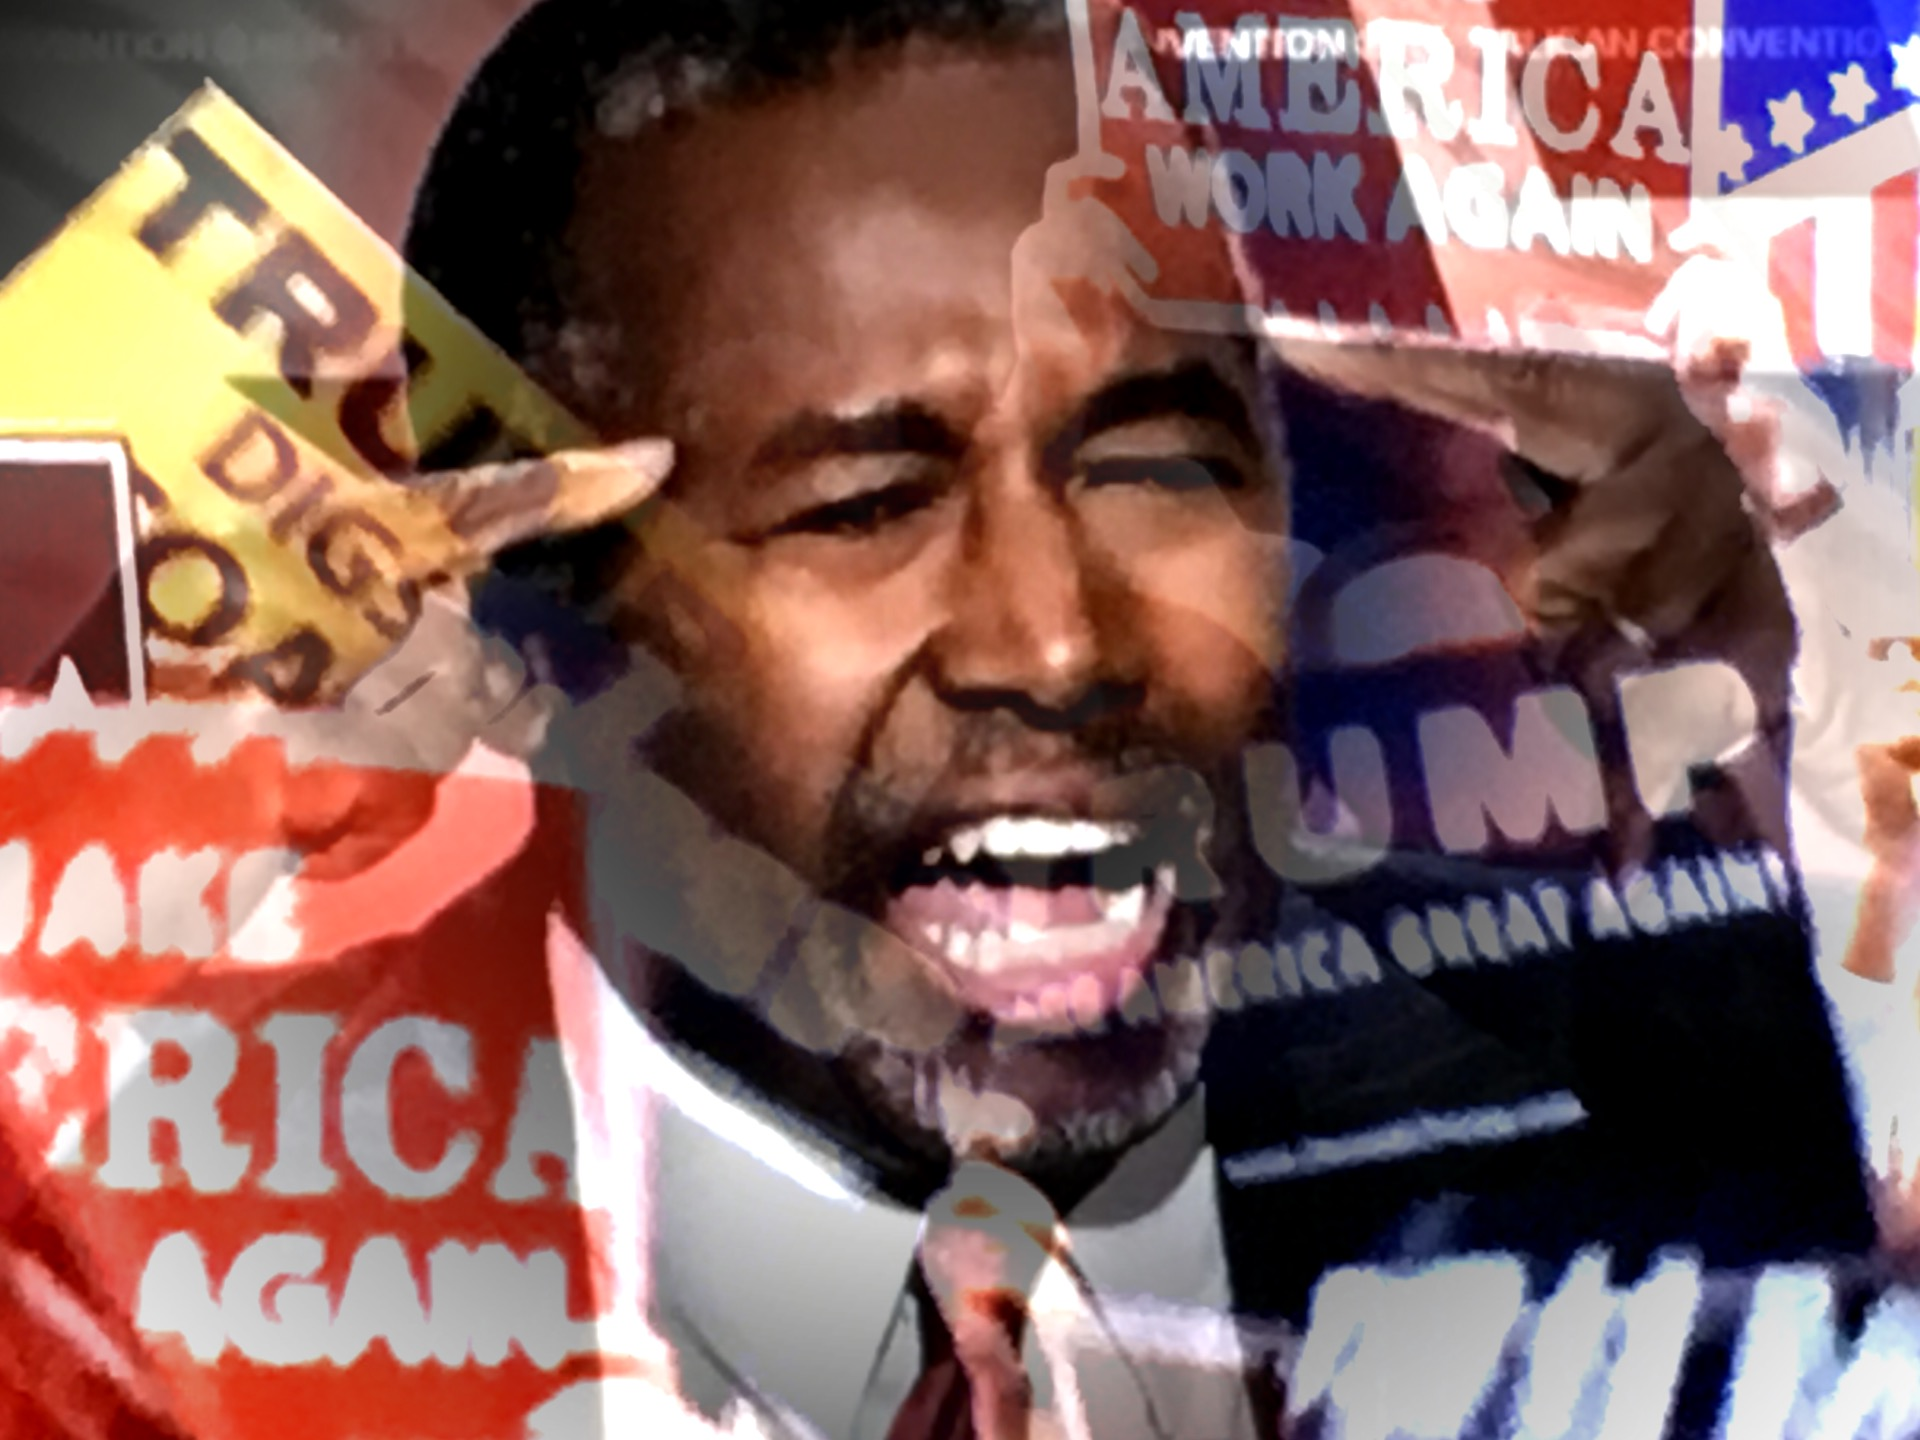 Ben Carson addresses the RNC. (Composite image by Biz Herman/GroundTruth)